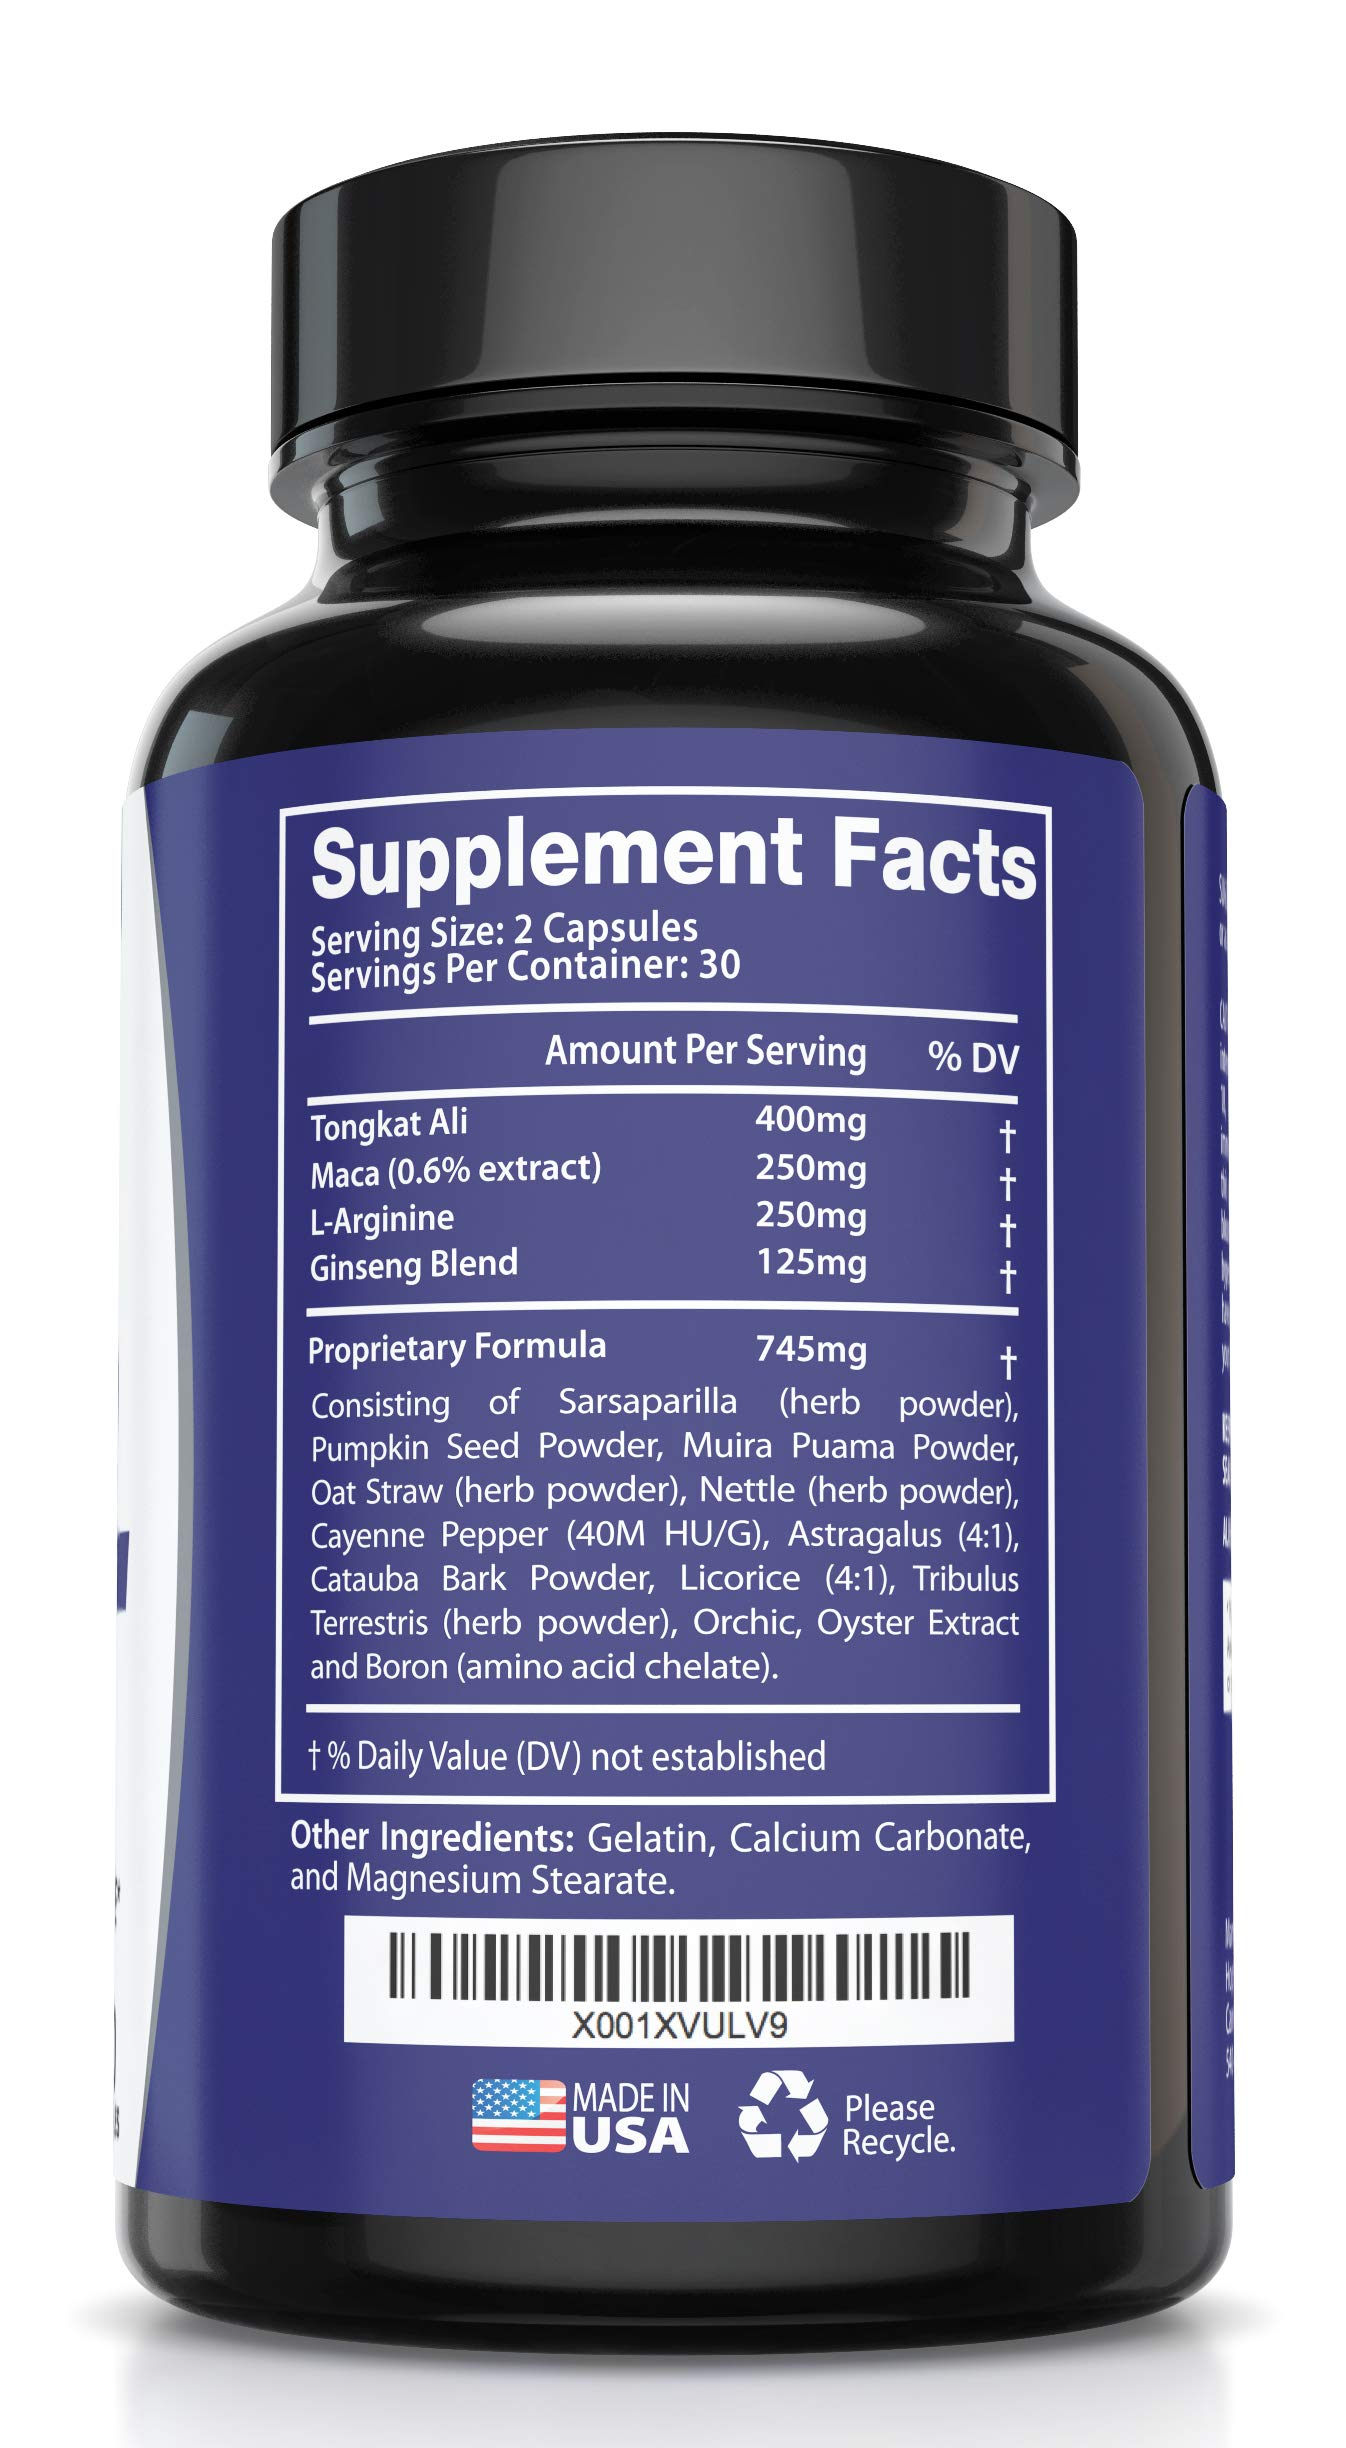 Best Fast-Acting Male Enhancing Pills - #1 Testosterone Booster for Men Increase Size, Drive, Stamina & Endurance - L Arginine, Tongkat, Maca, Ginseng Supplement - Boost Energy, Muscle & Performance by HMC (Image #6)